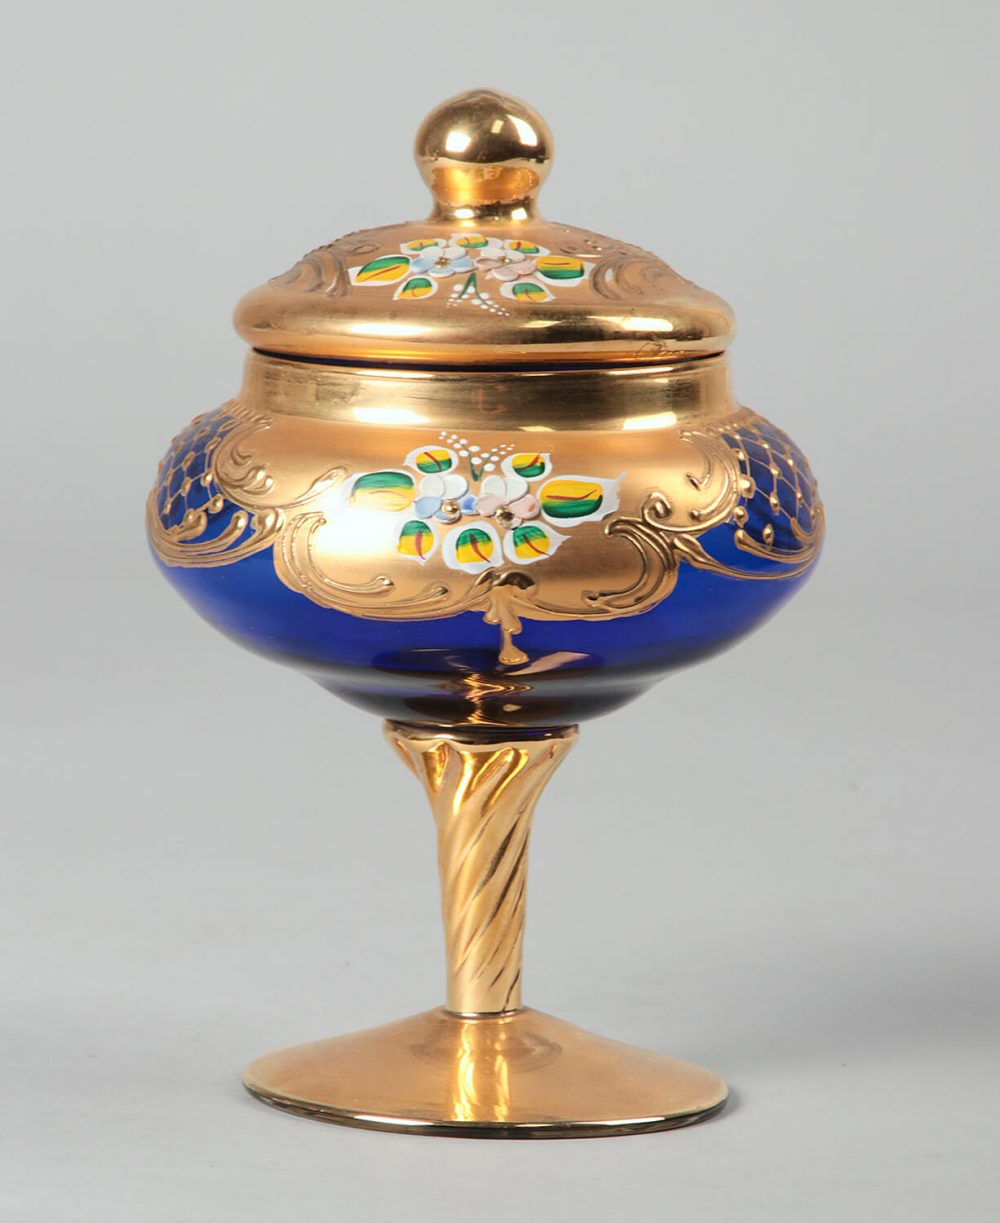 Bonbon chocolate bowl with lid, gilded